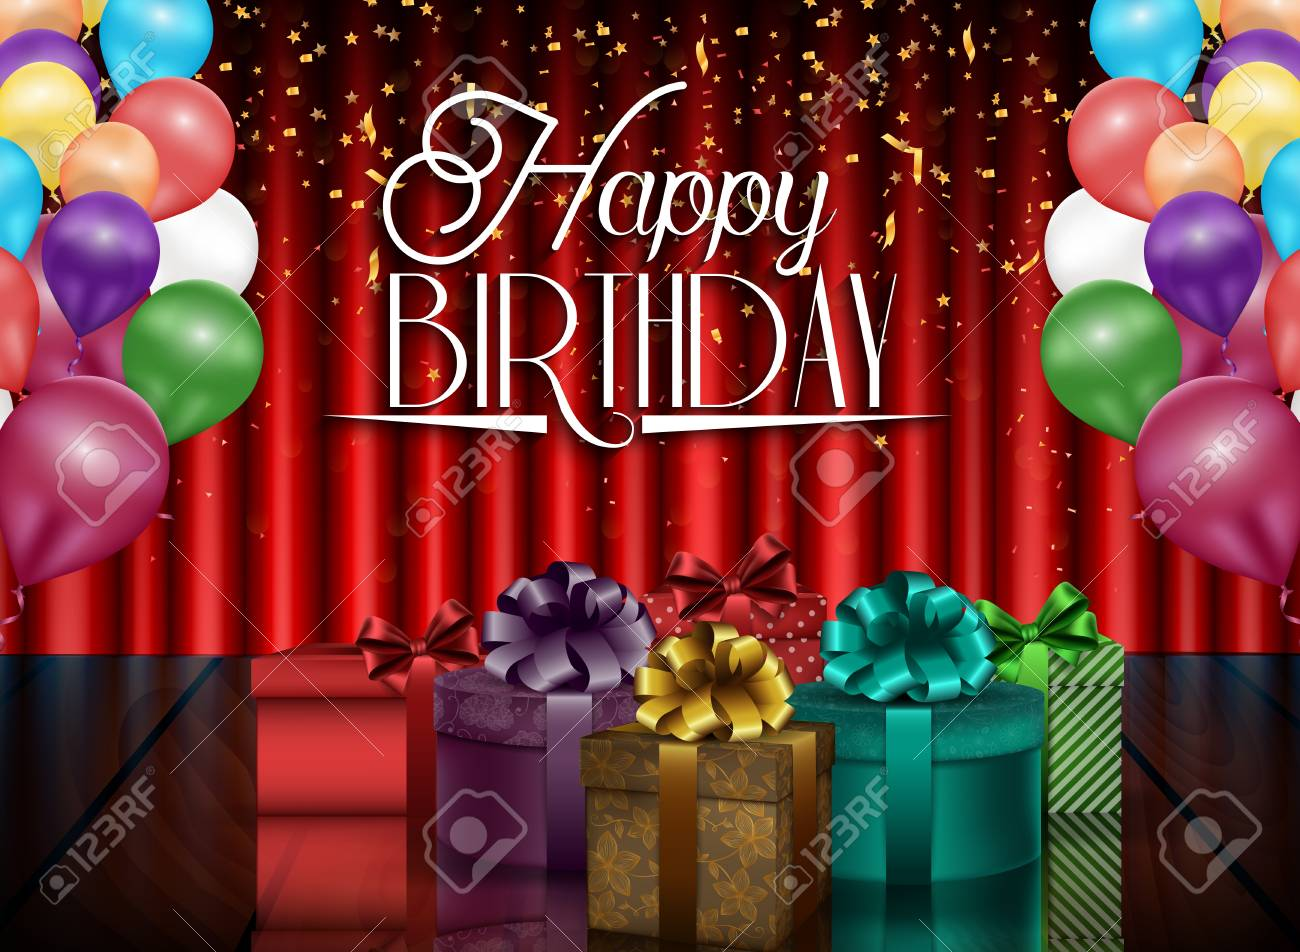 Birthday Background Of Party With Color Balloons And Gift Boxes